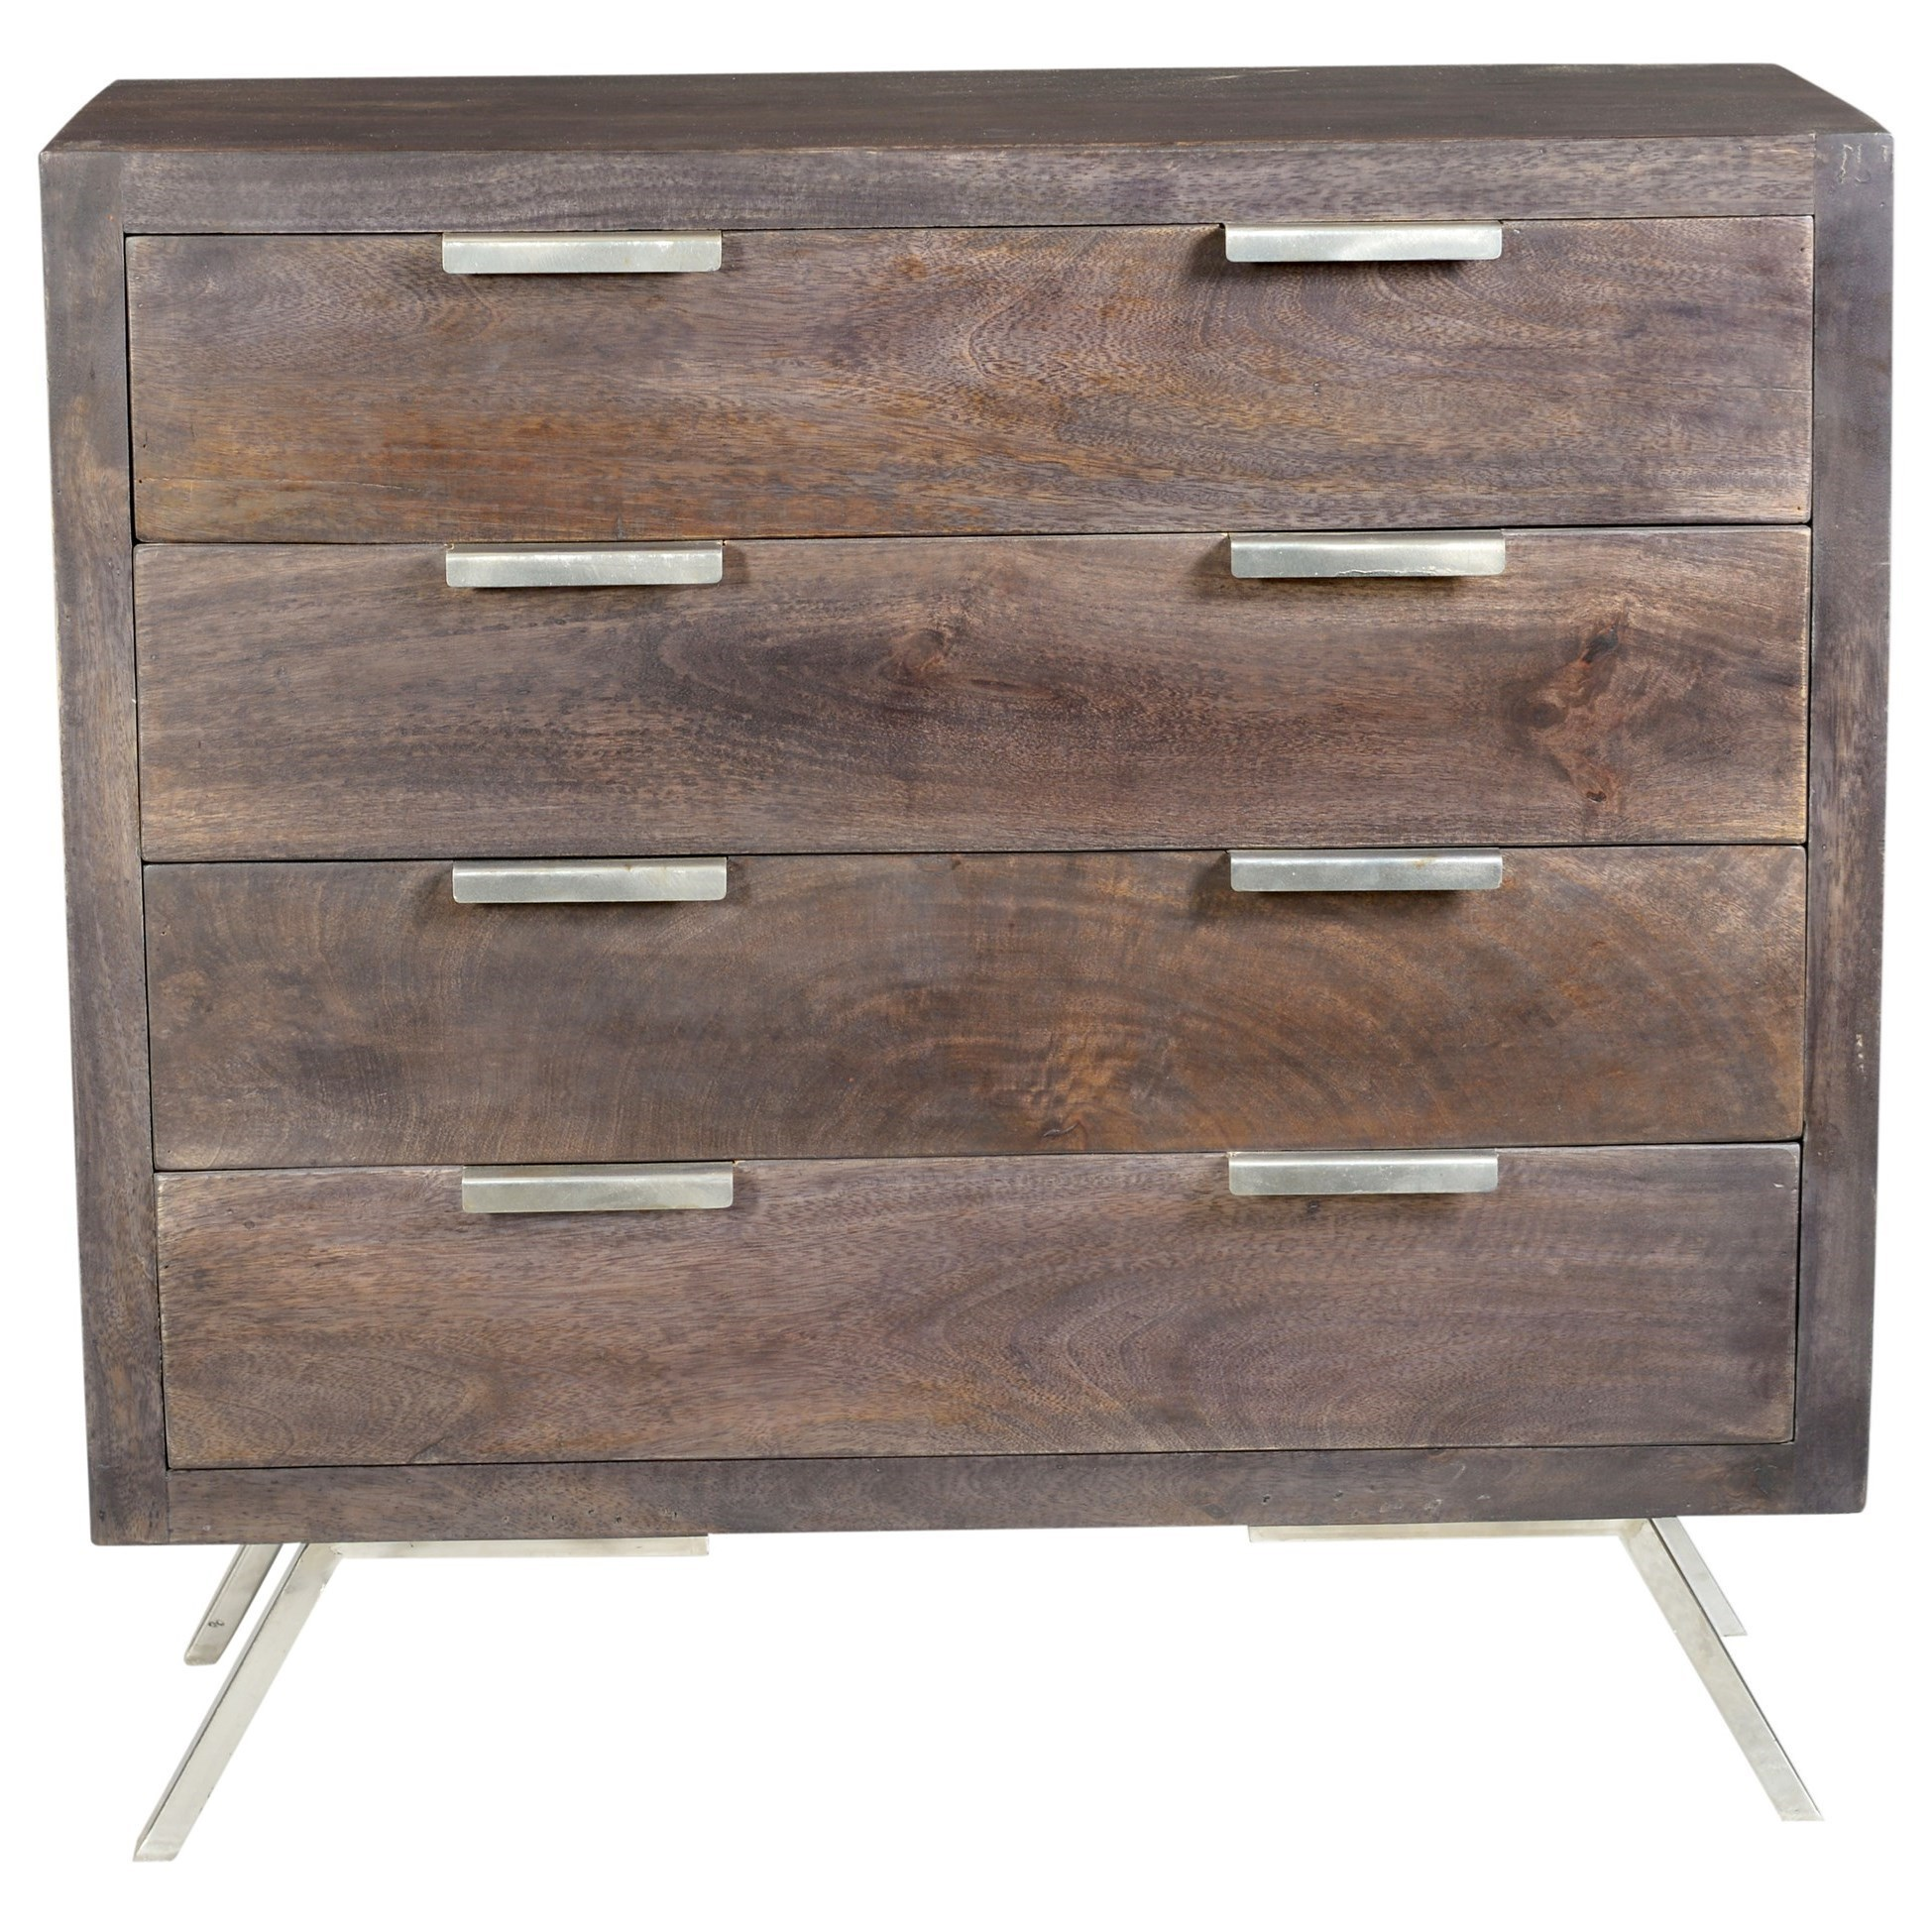 Stein World Cabinets Hector Accent Chest